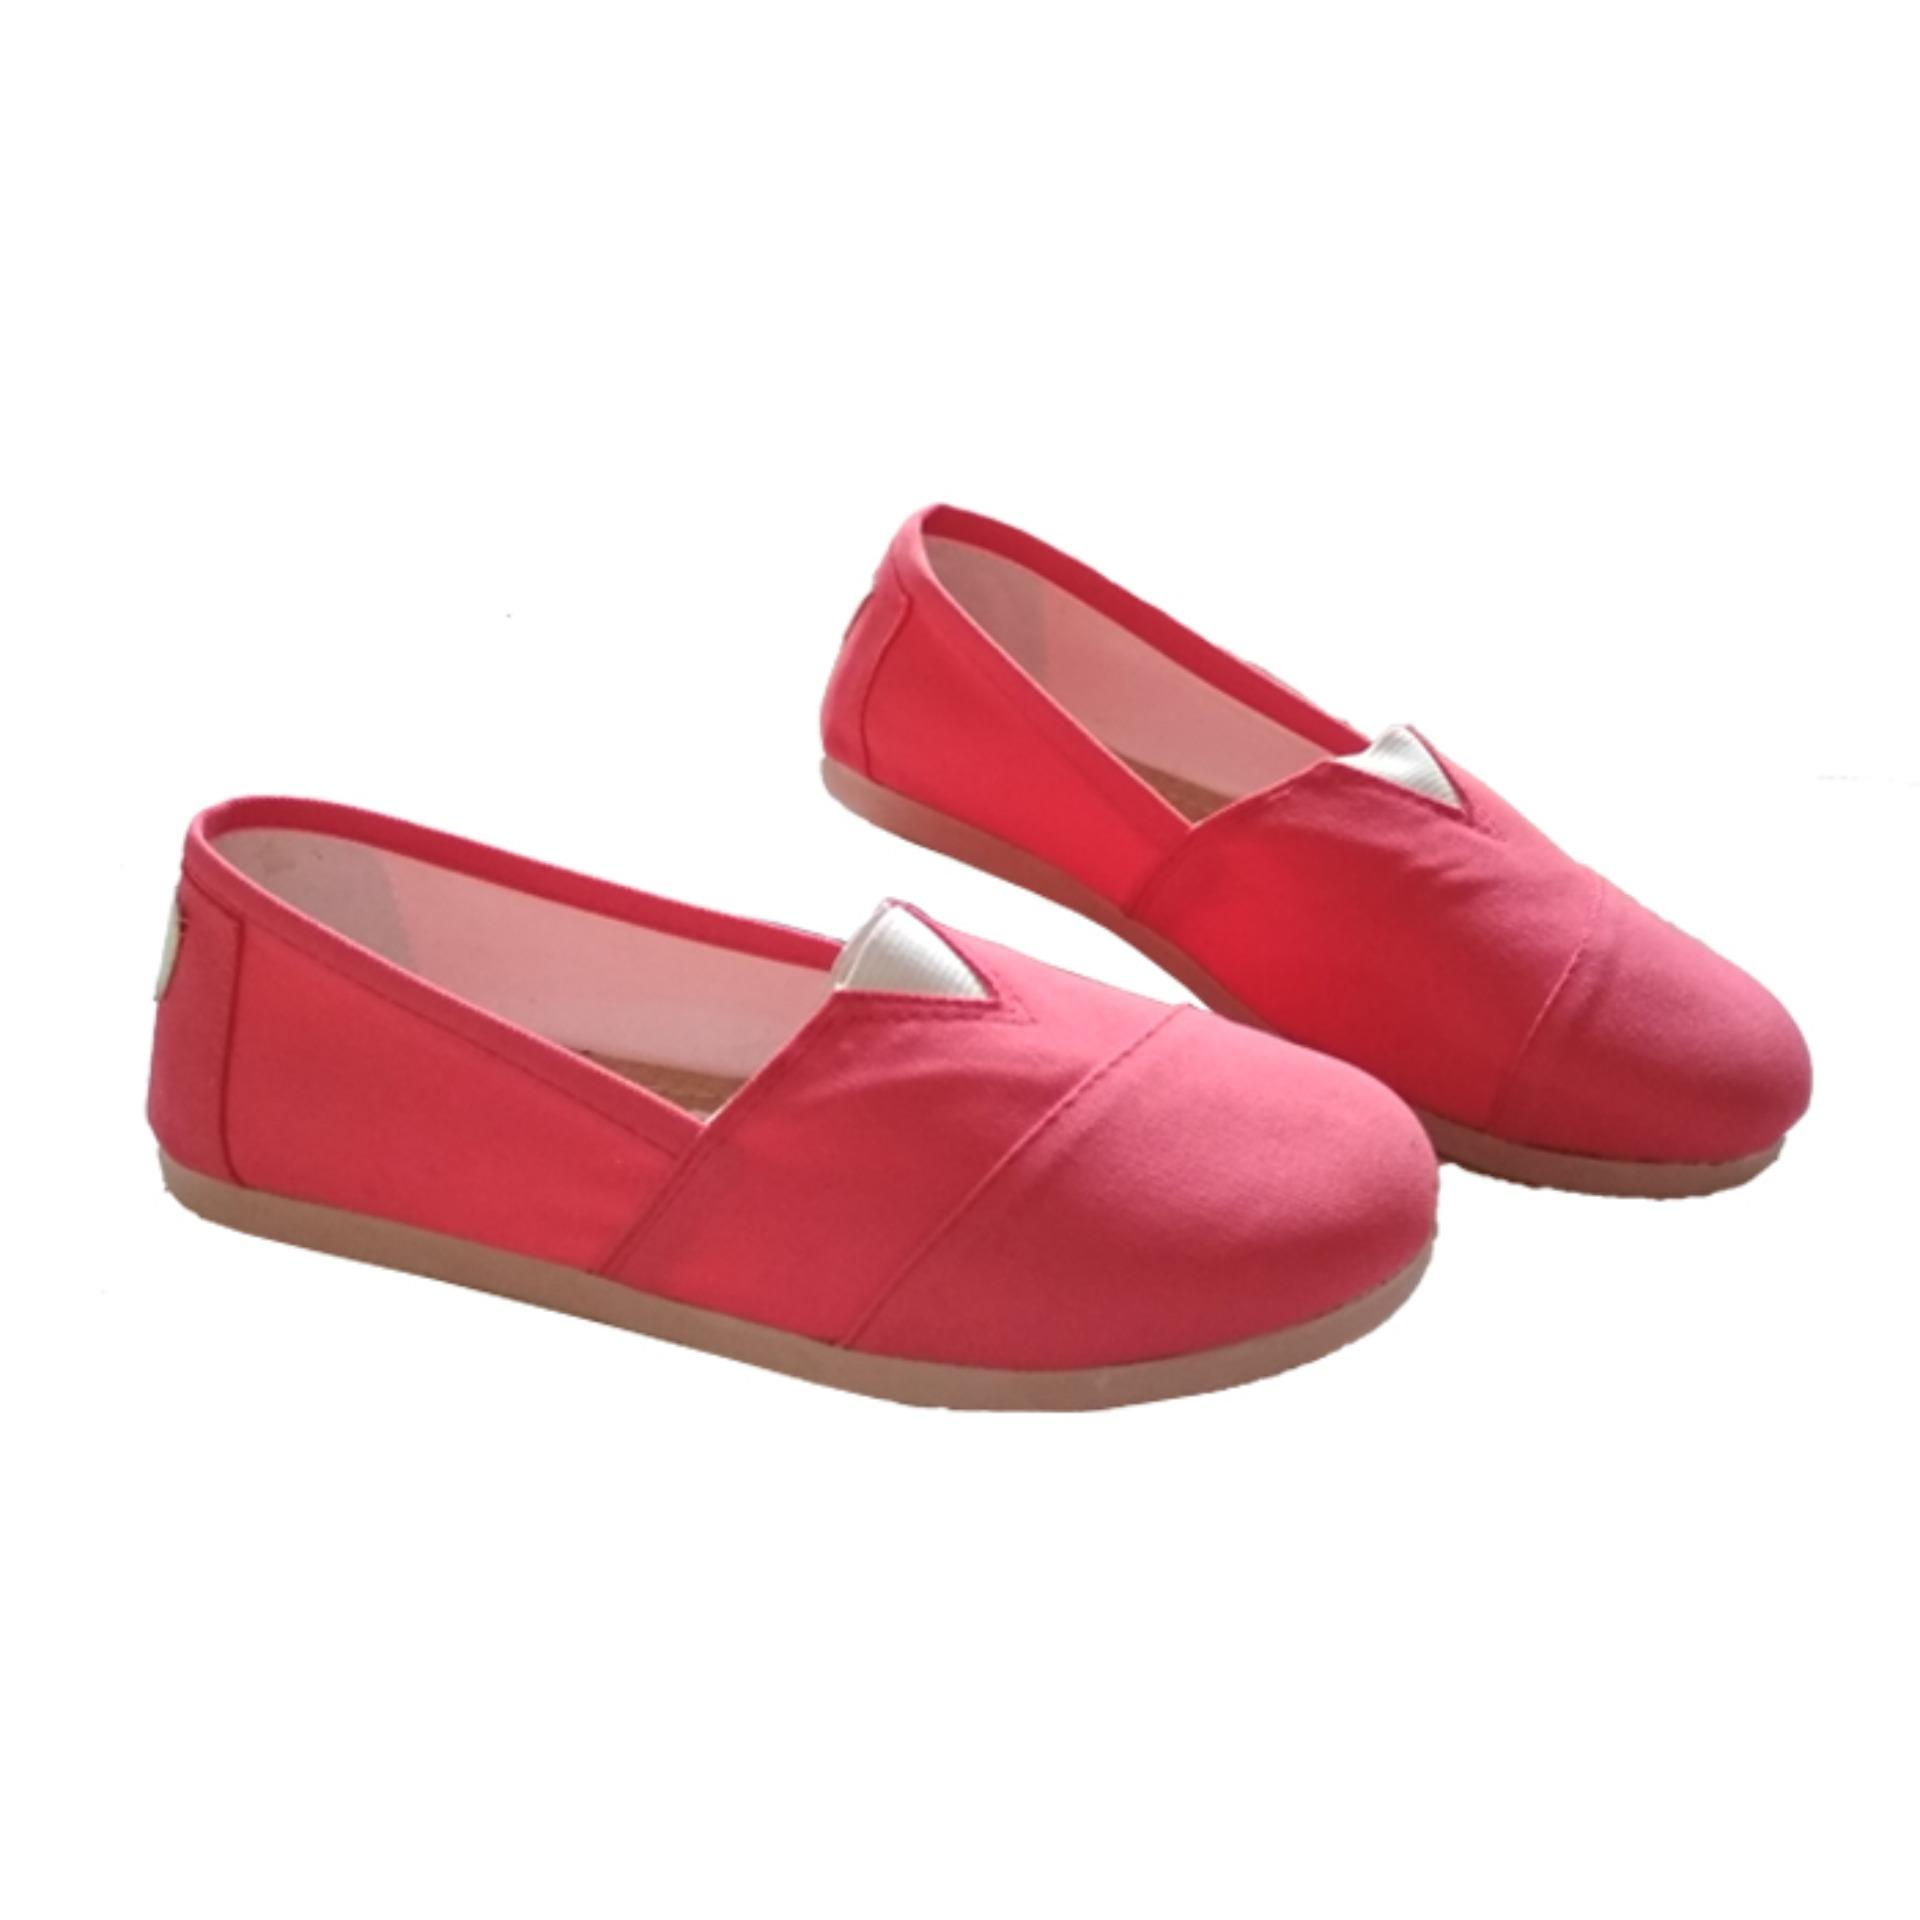 Original Sepatu Wanita Flat Shoes Casual ala Wakai Slip On Kanvas - (Maroon / Hitam / Salem / Abu)